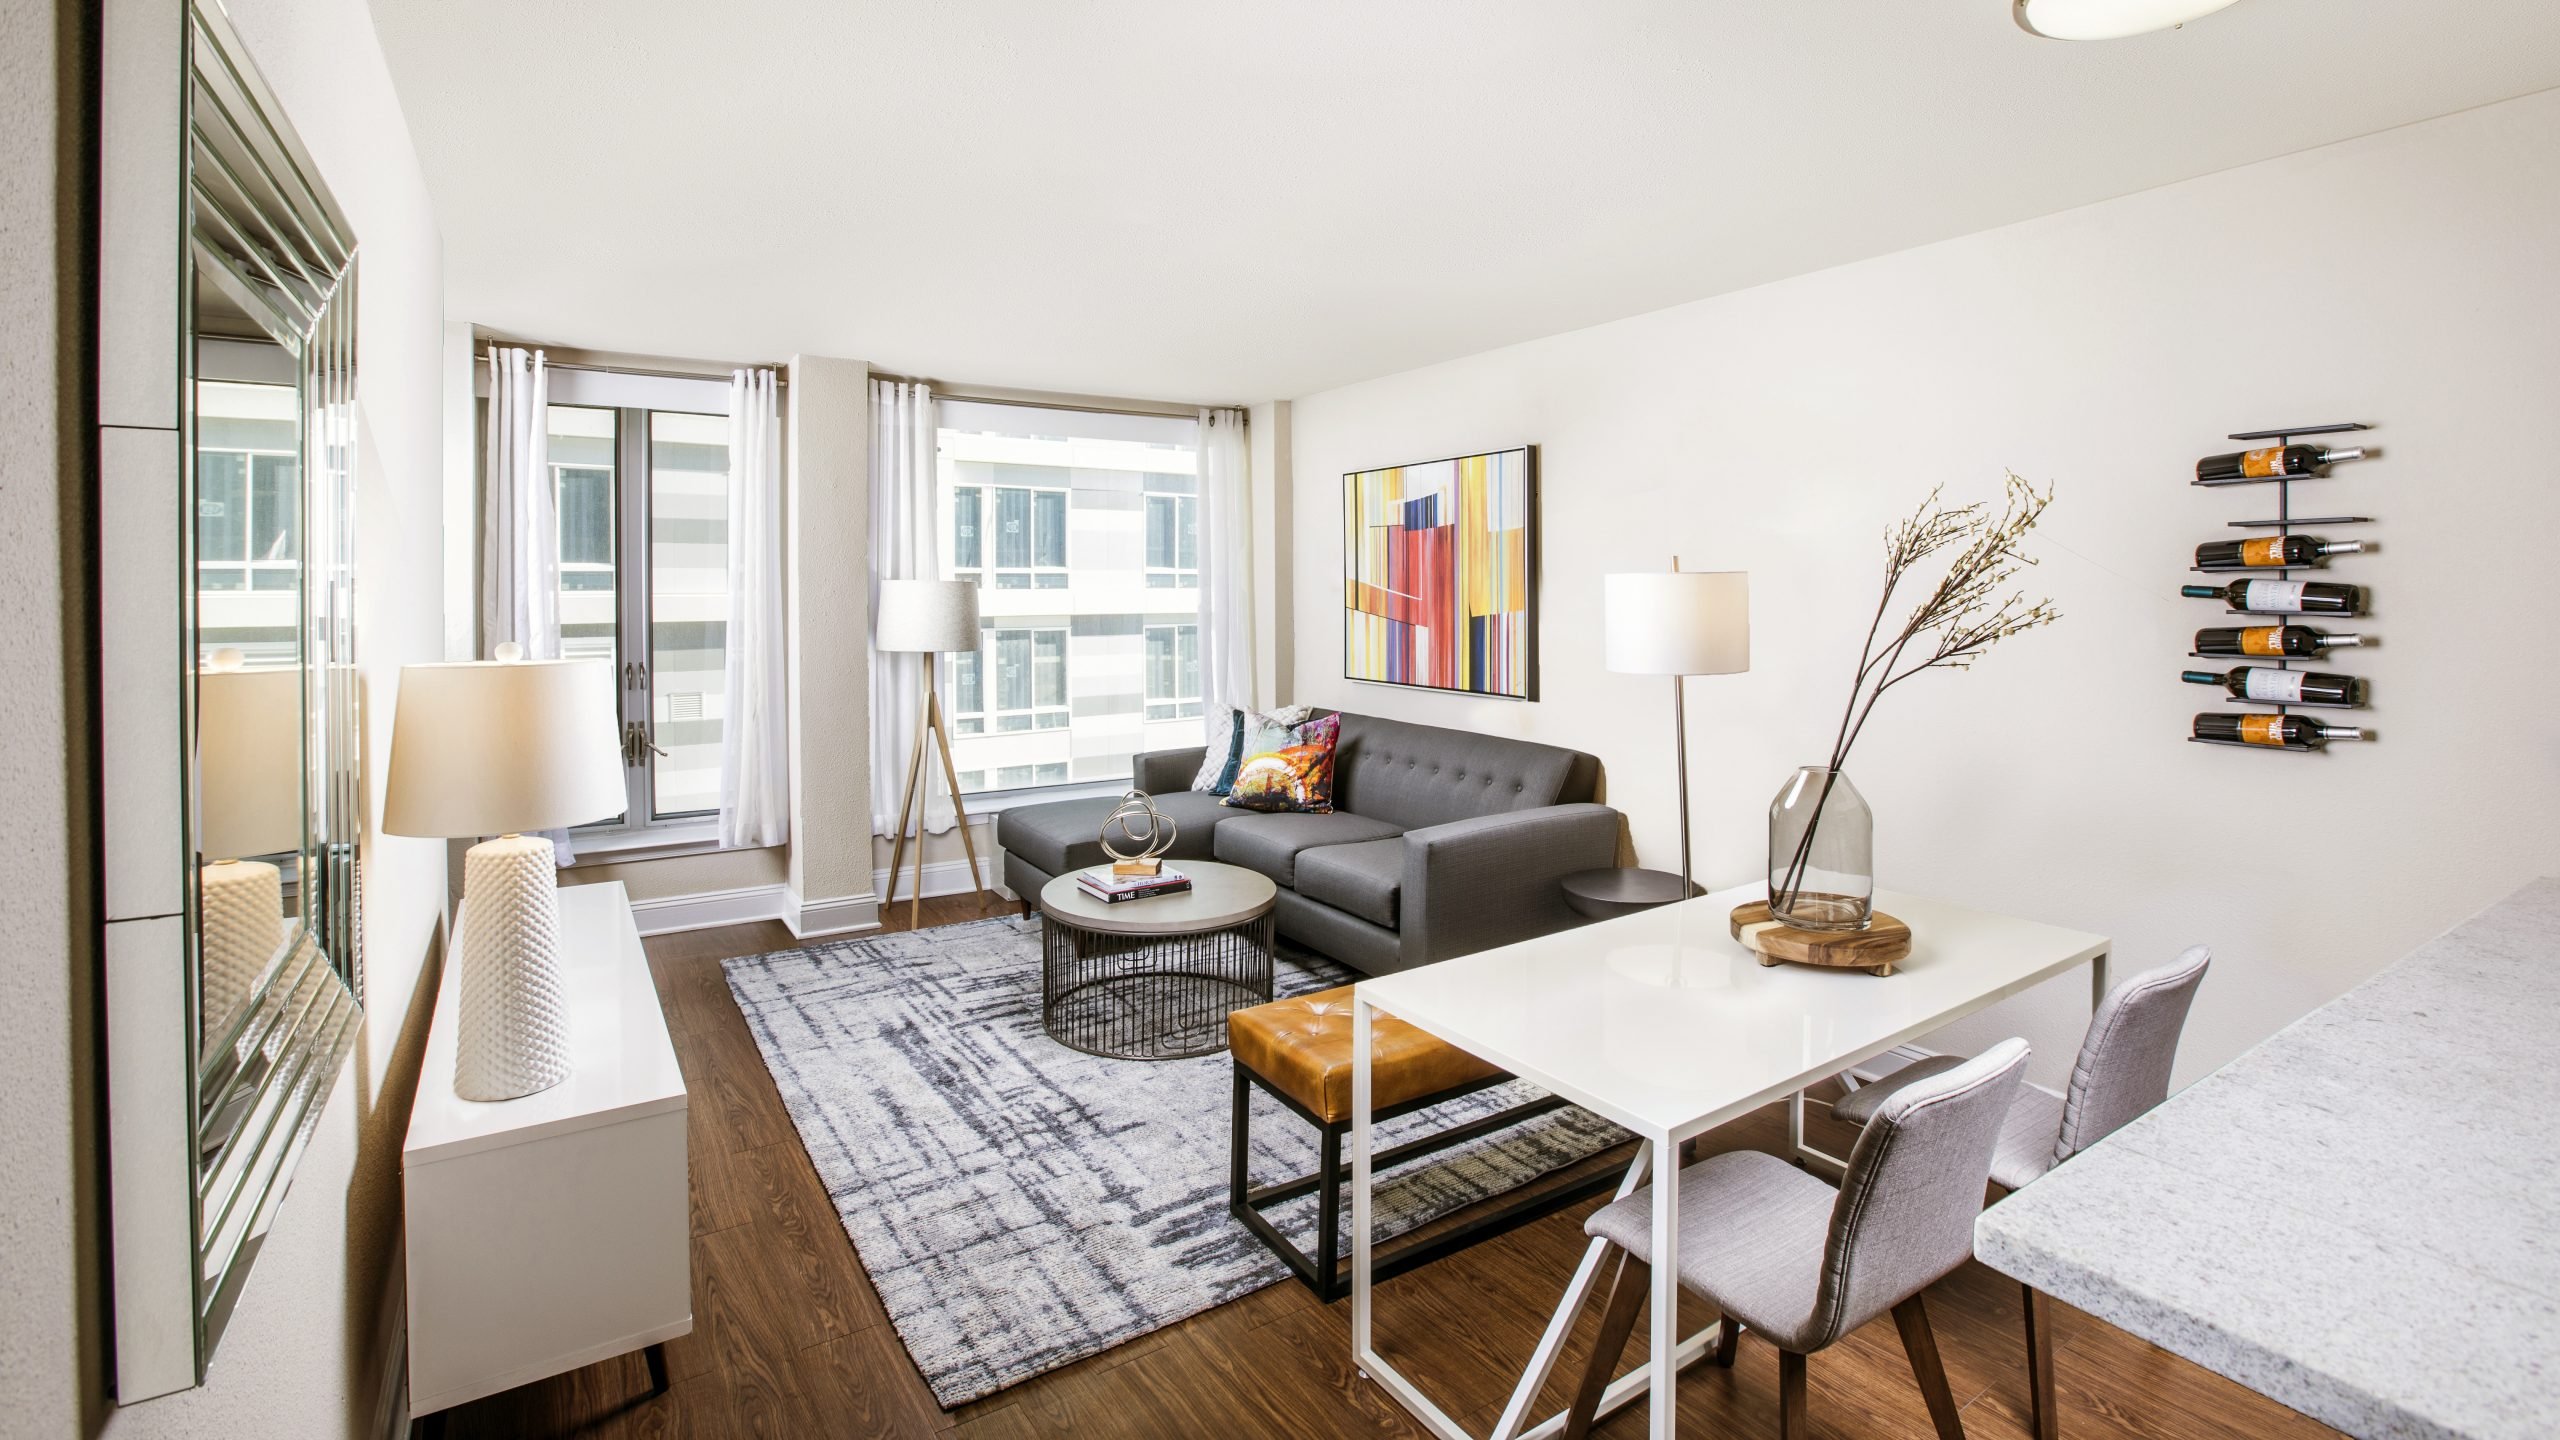 Explore the Perks of Modern on M's Classic Apartments